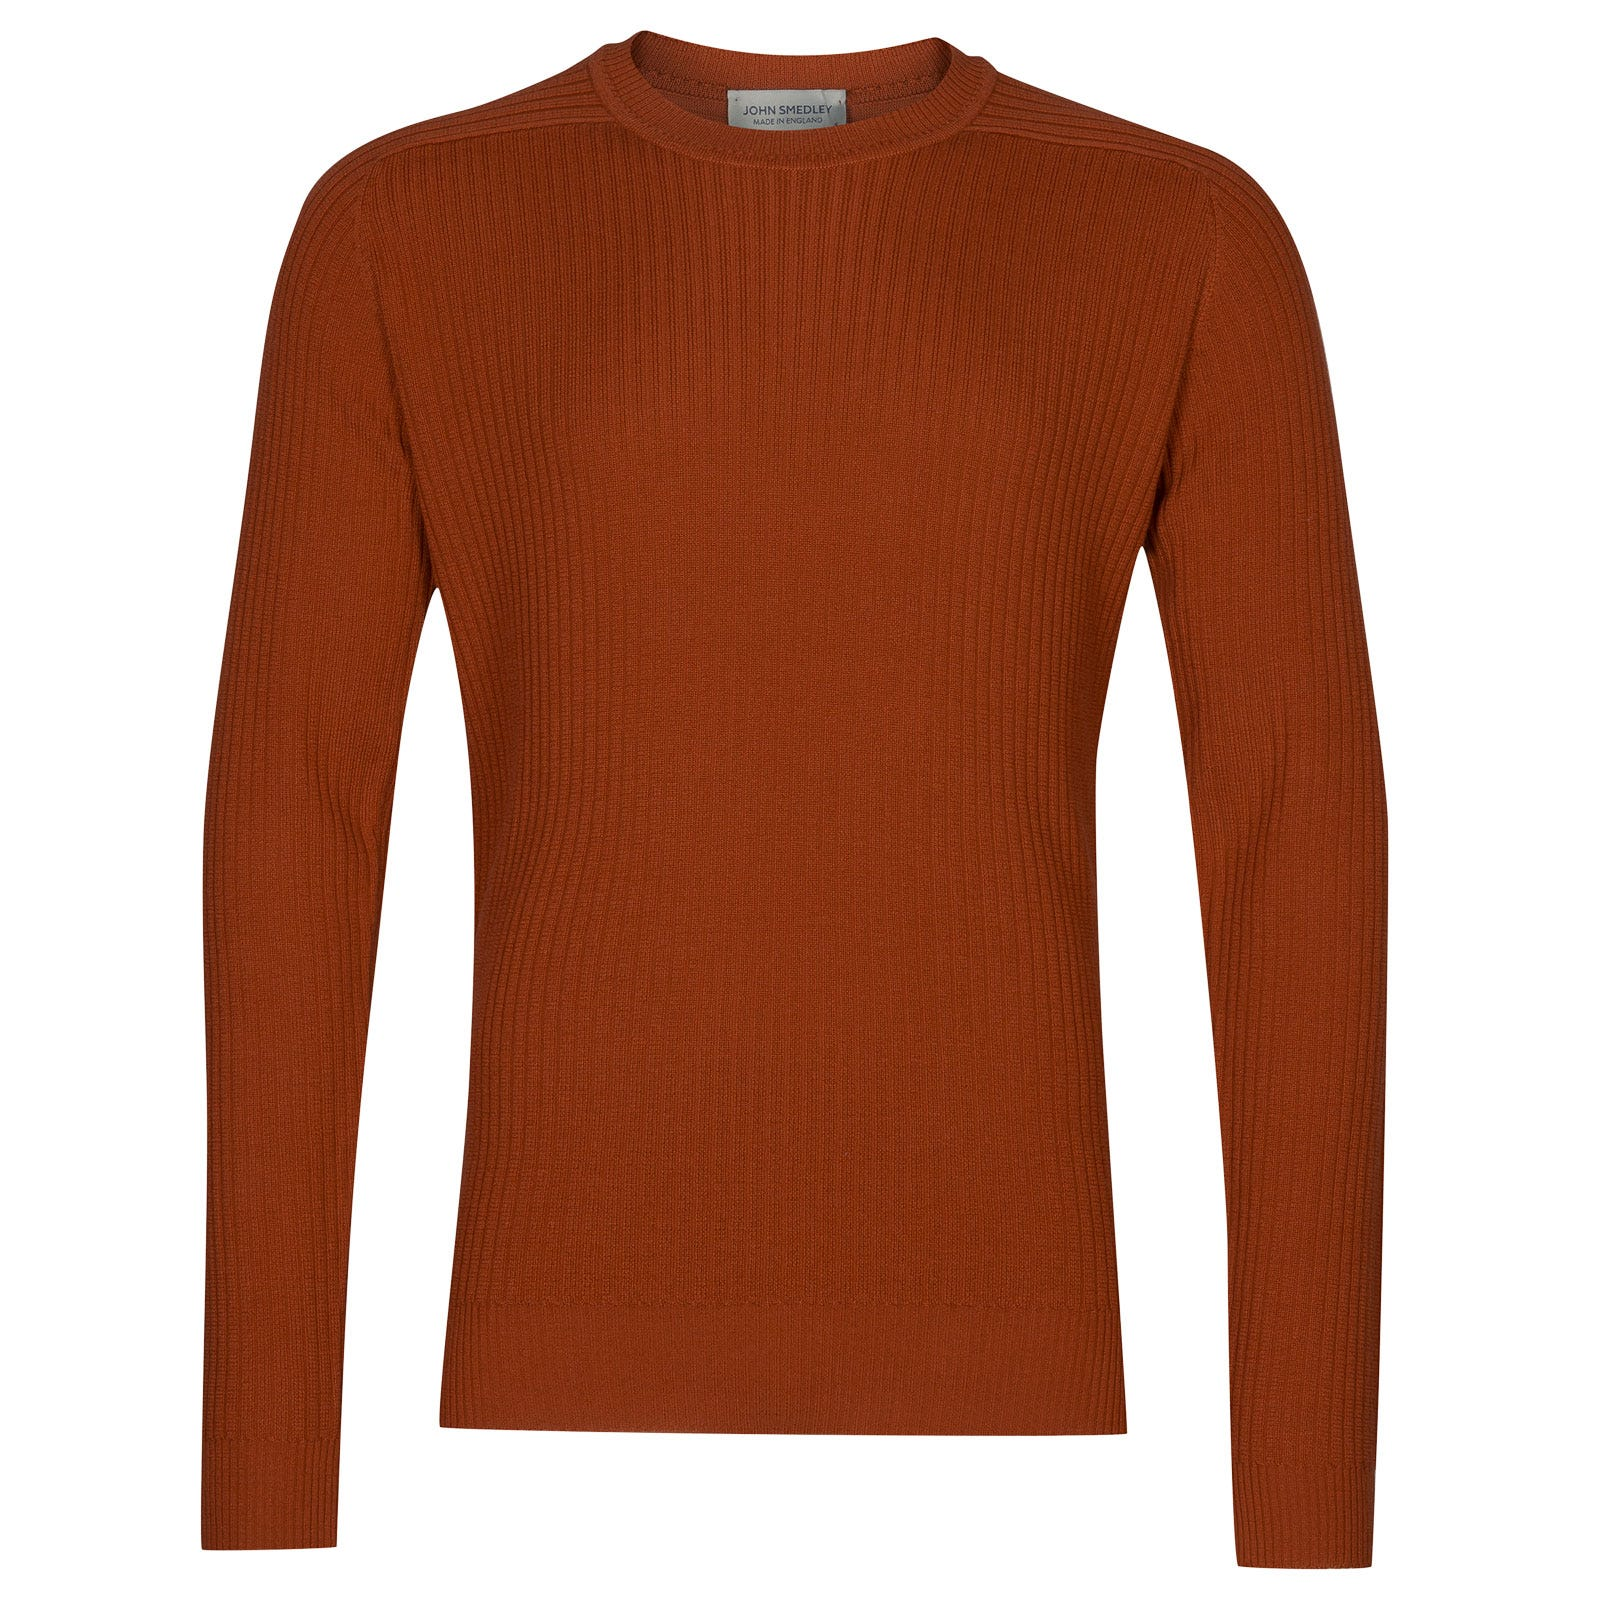 John Smedley idris Merino Wool Pullover in Flare Orange-M